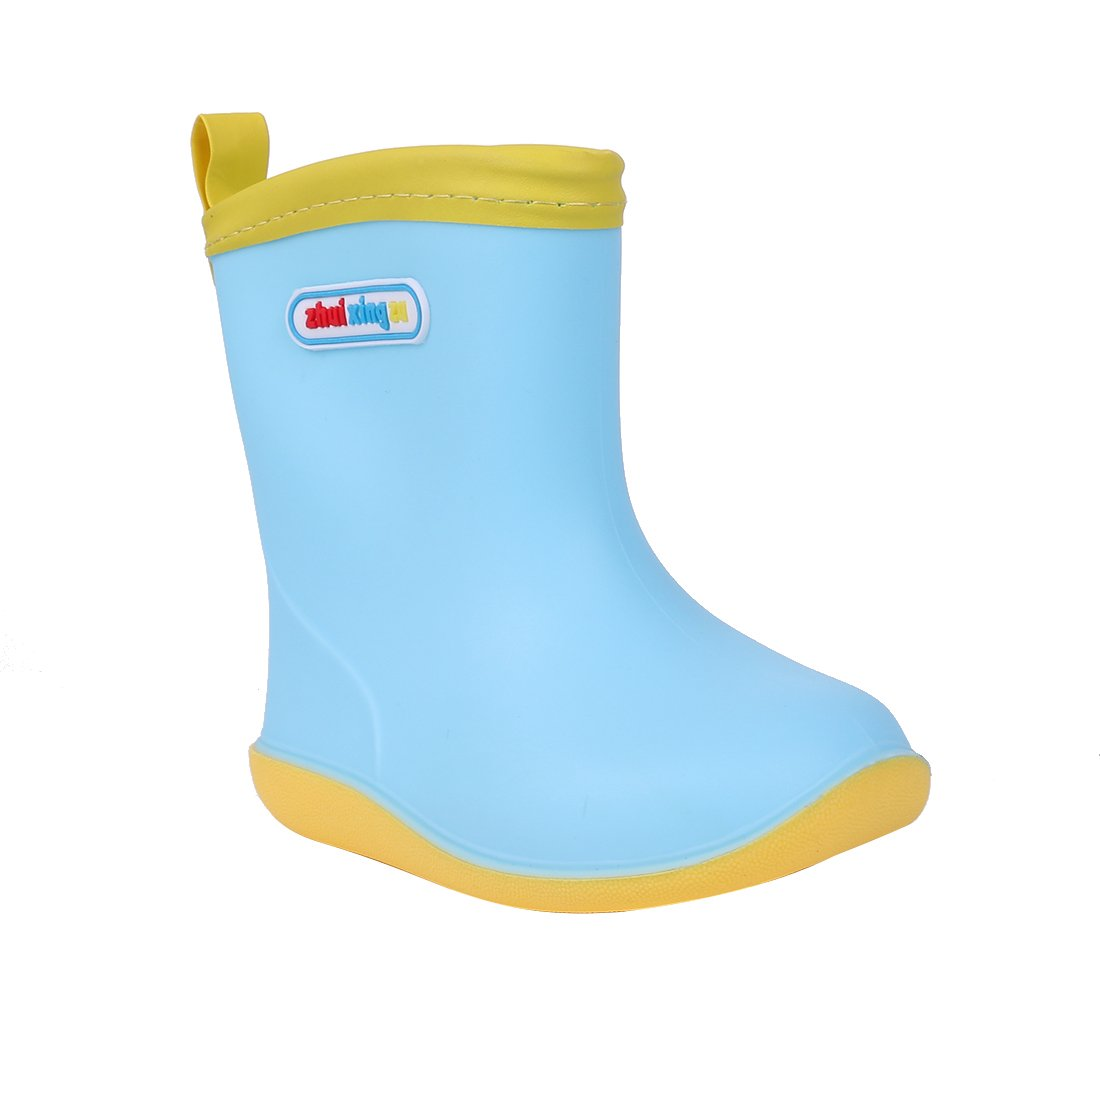 Asgard Cute Rain Boots for Kids Waterproof Candy Color Ankel Rubber Boots, with Warm Cosy Soft Socks B16 by Asgard (Image #4)